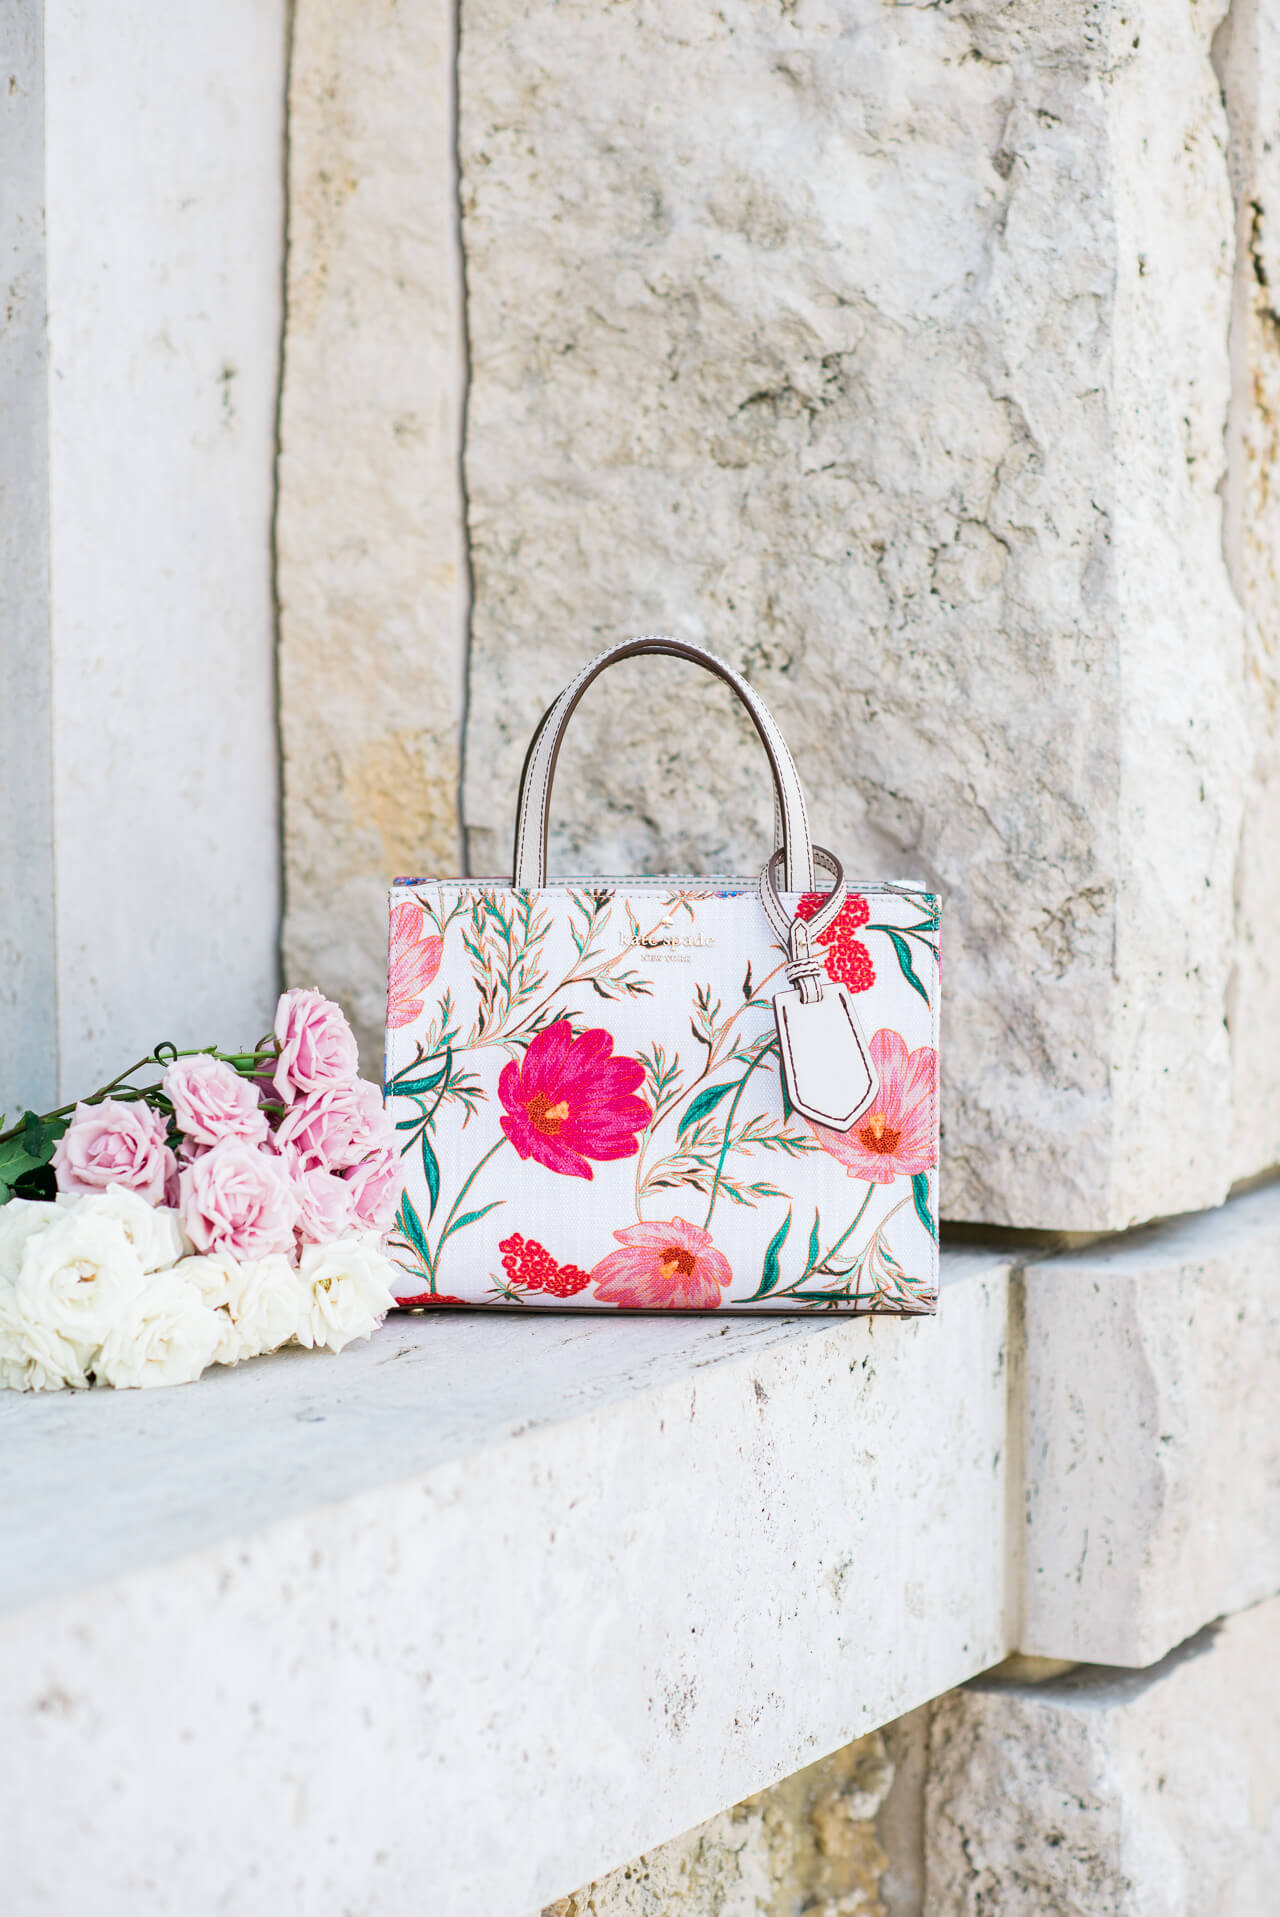 this is a must-have spring floral bag!